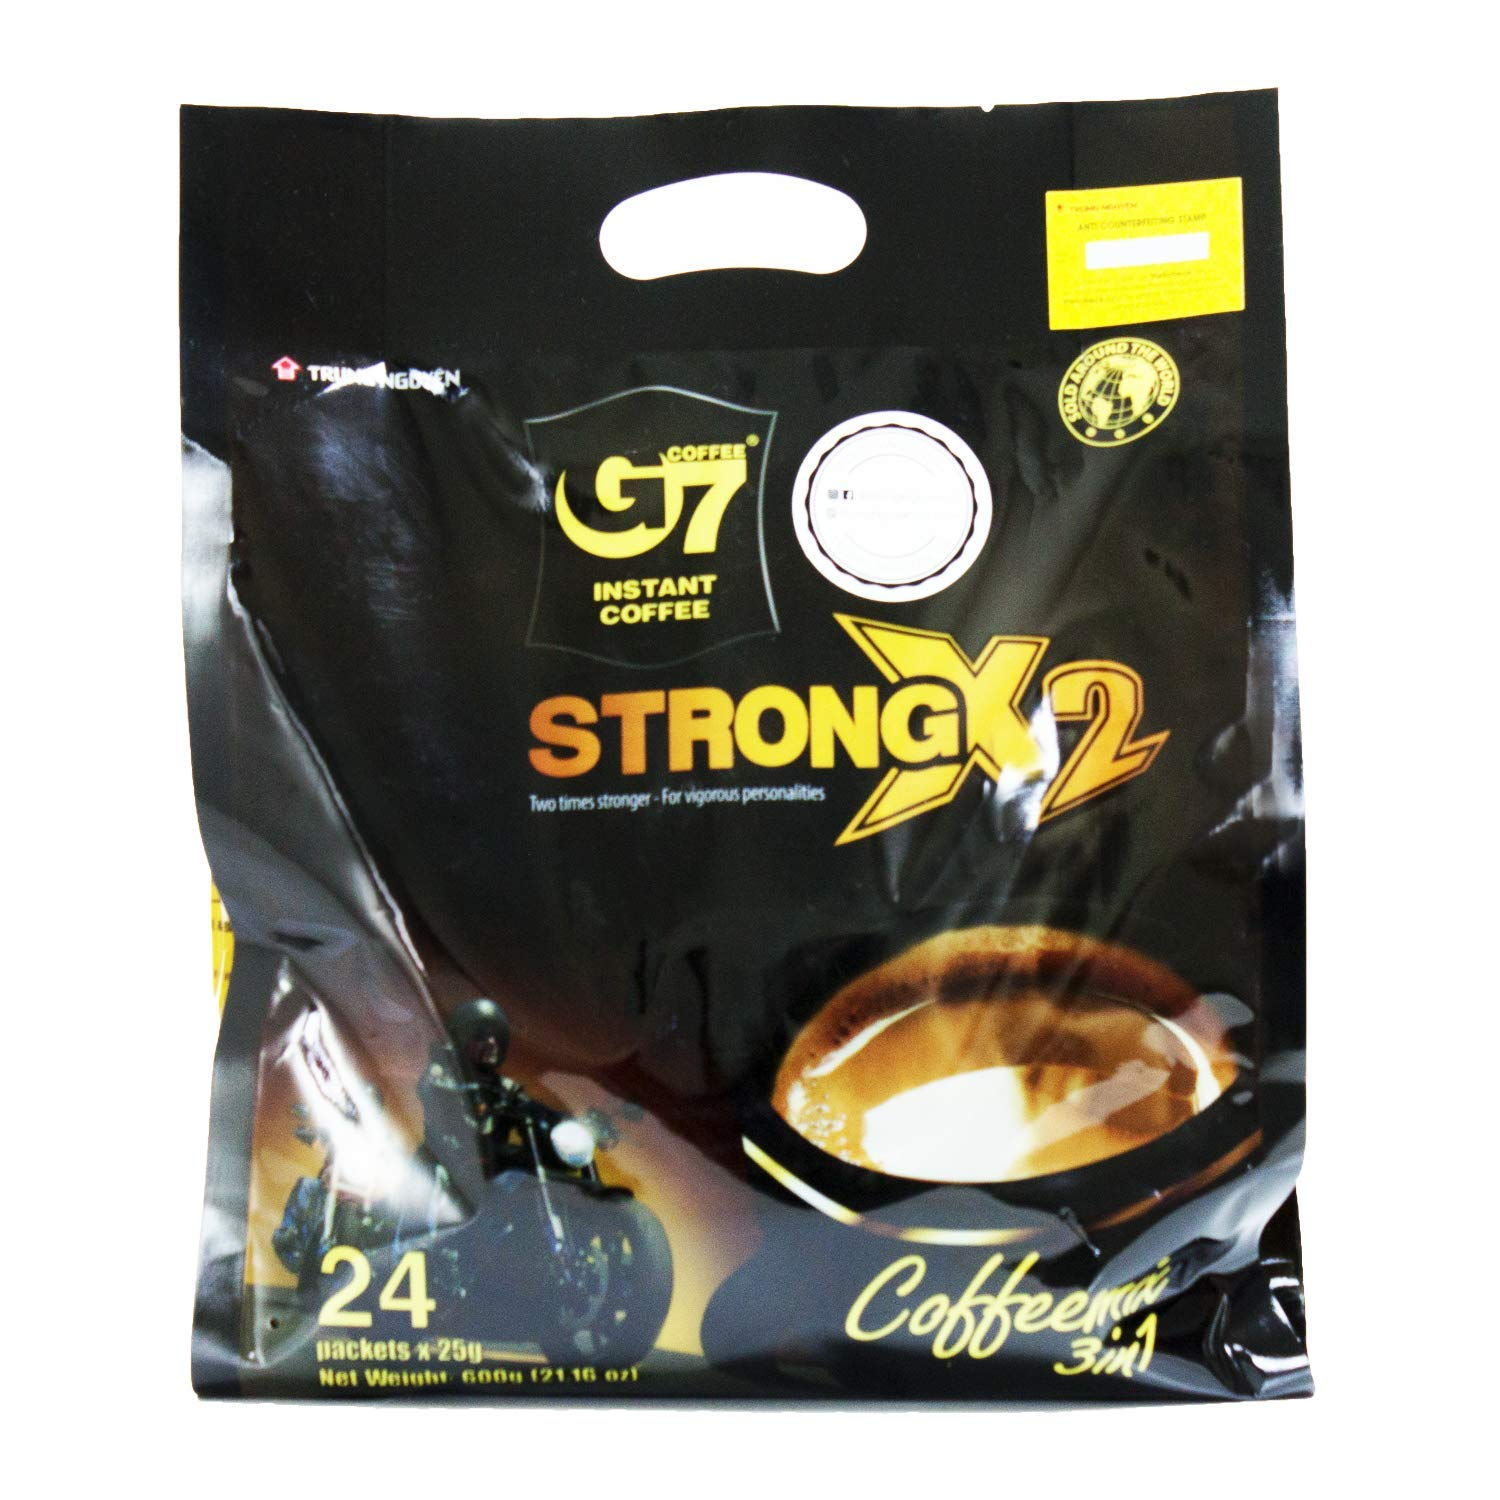 Trung Nguyen - G7 Strong X2 3 In 1 Instant Coffee - 24 sticks | Roasted Ground Coffee Blend Double strength, with Creamer and Sugar, Suitable for Most Coffee Brewing Methods, (24 sticks x 25gr/stick)